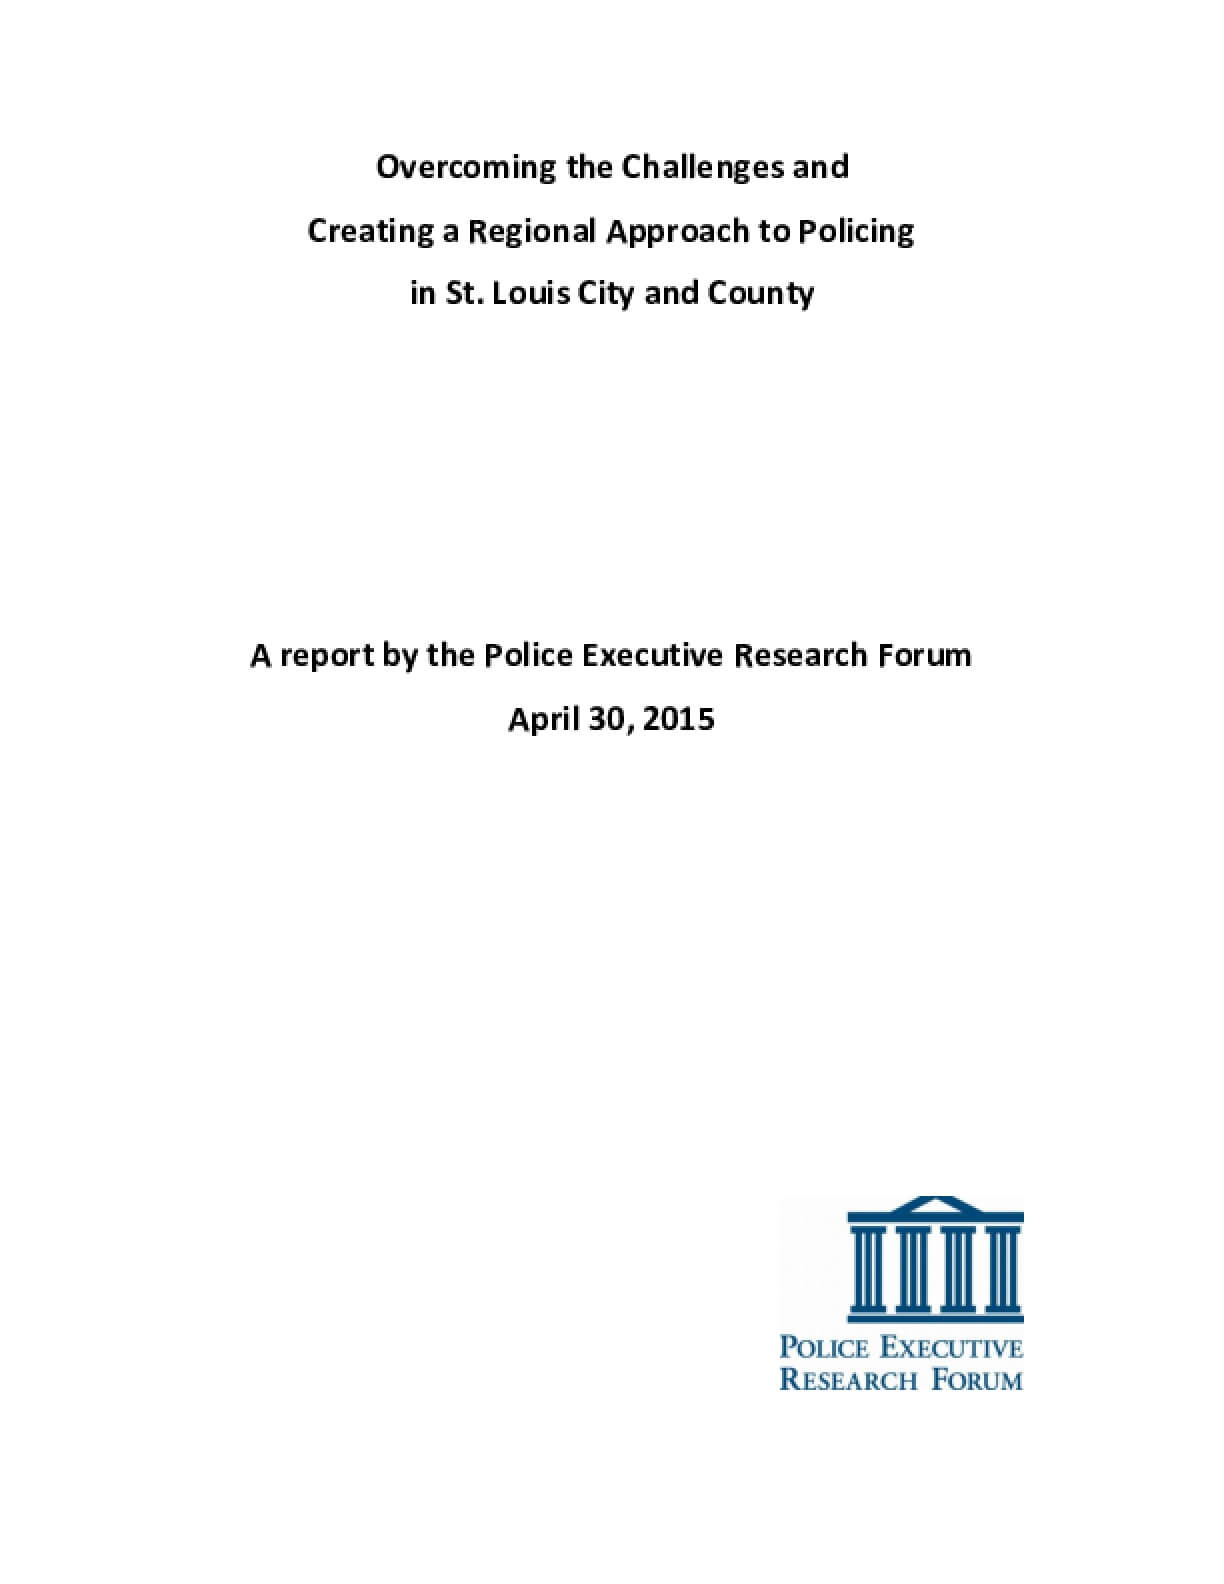 Overcoming the Challenges and Creating a Regional Approach to Policing in St. Louis City and County